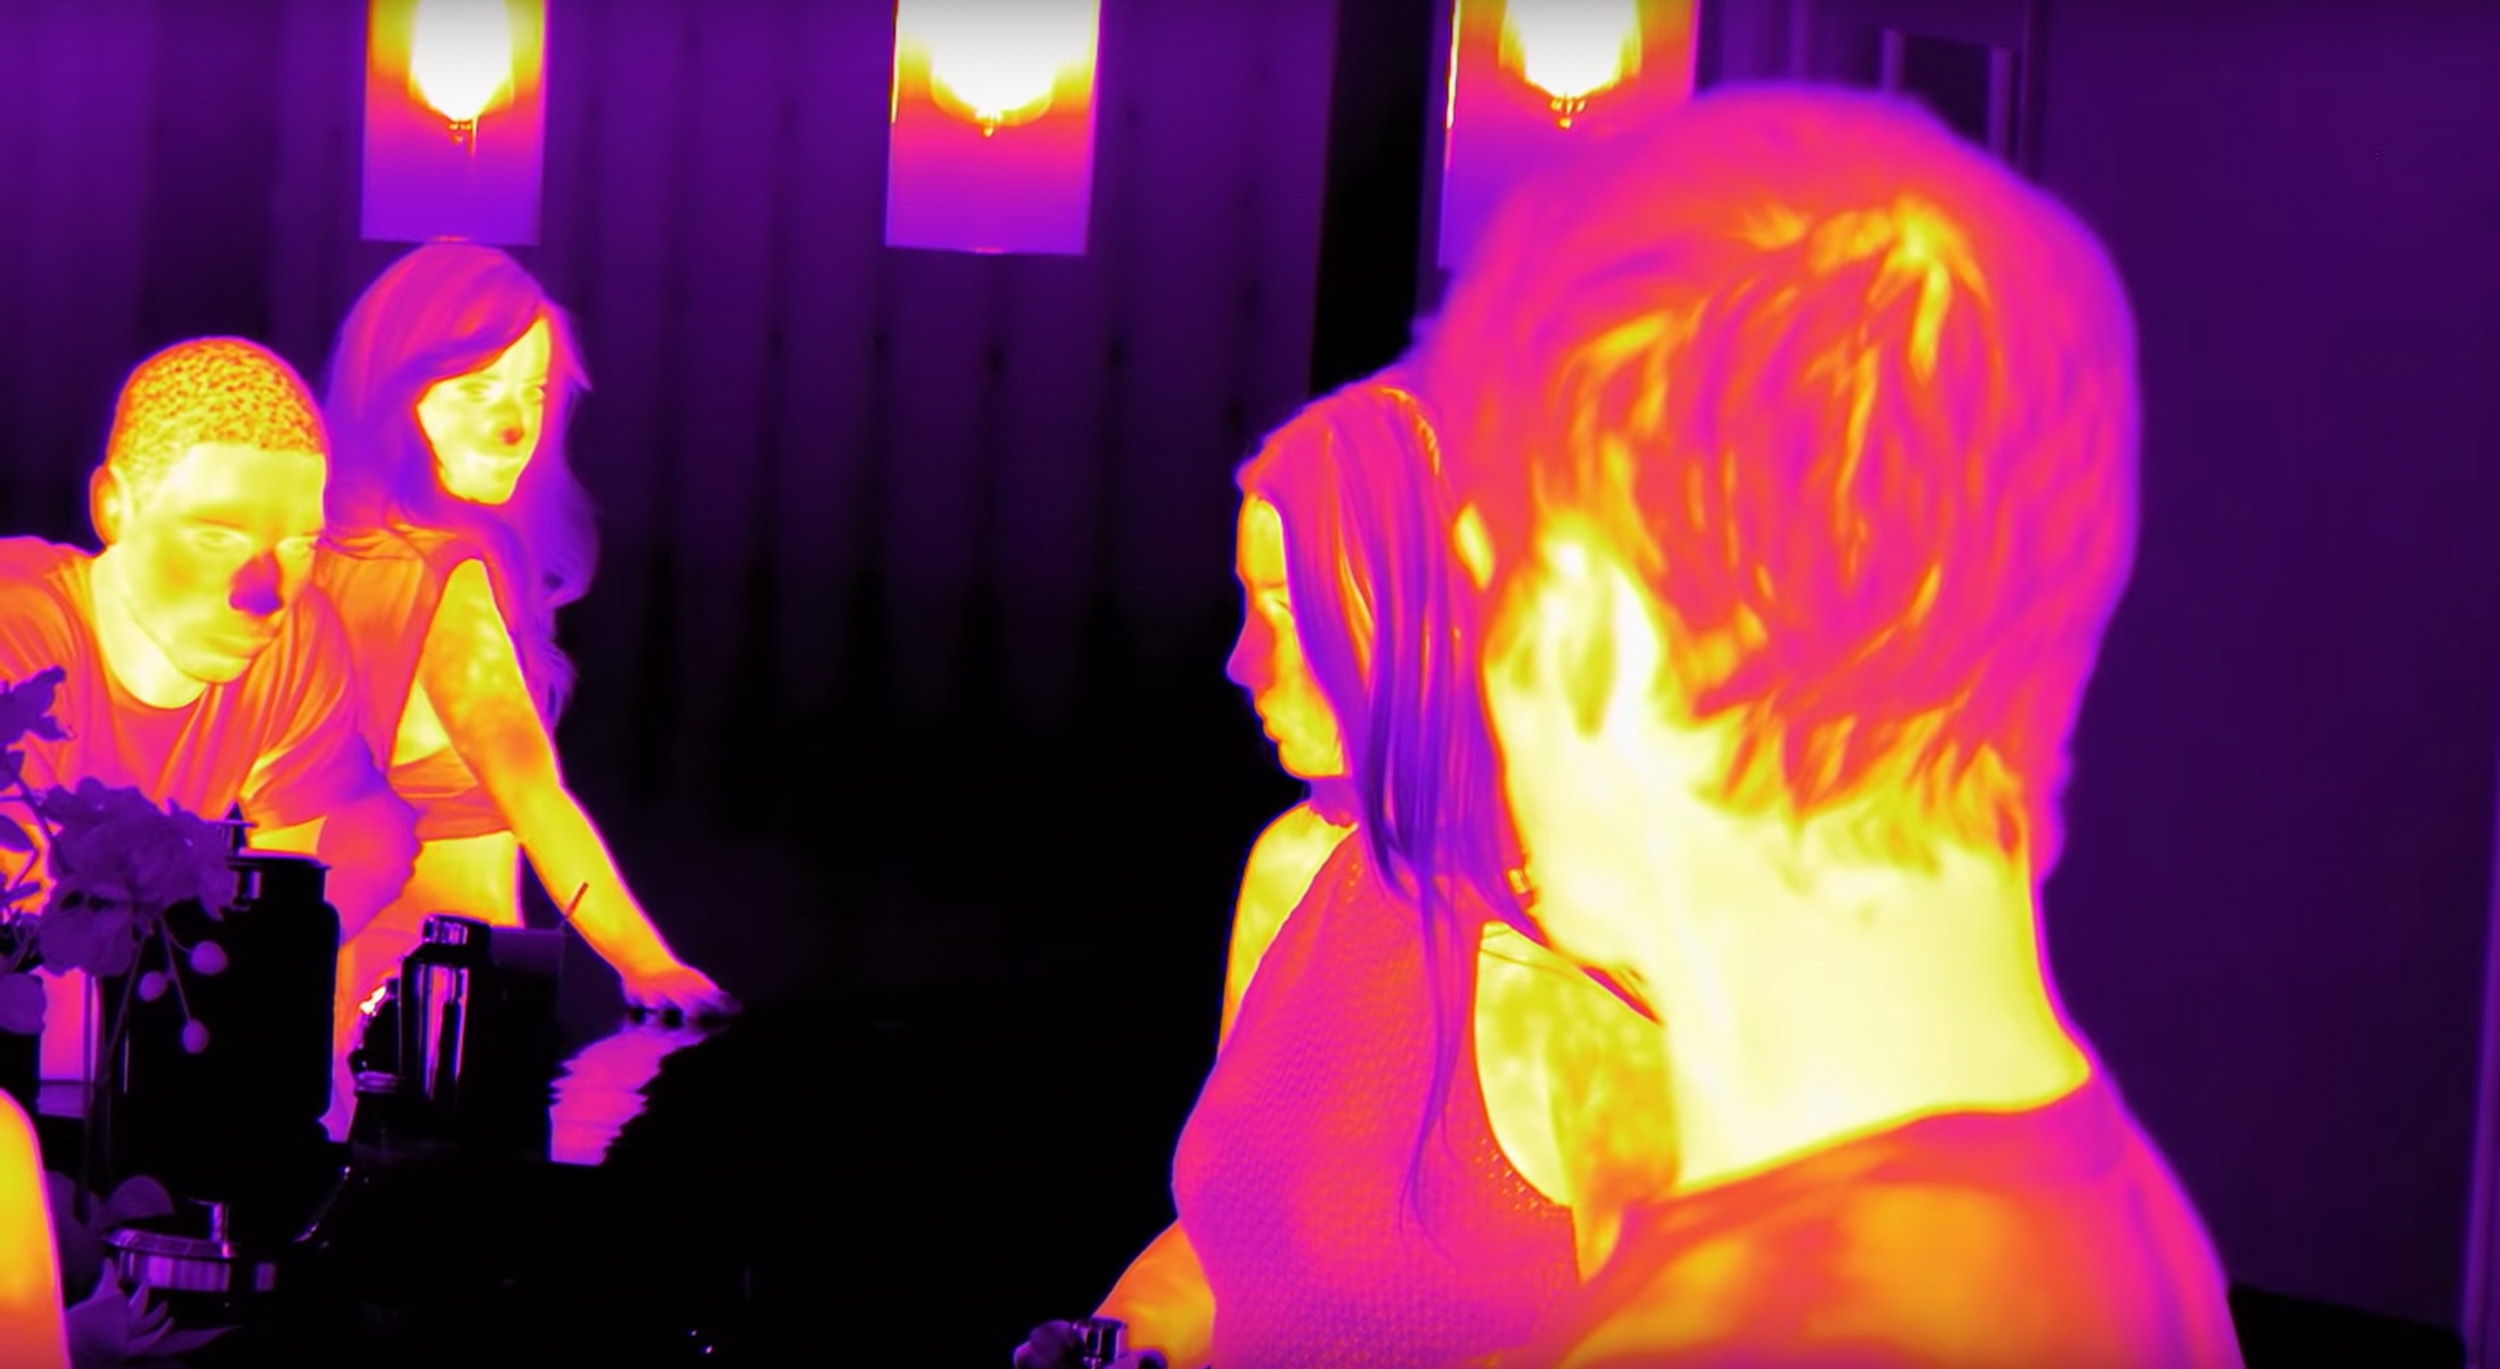 Because the camera recorded temperature and not light, we needed to completely rethink the way we understood imaging. -